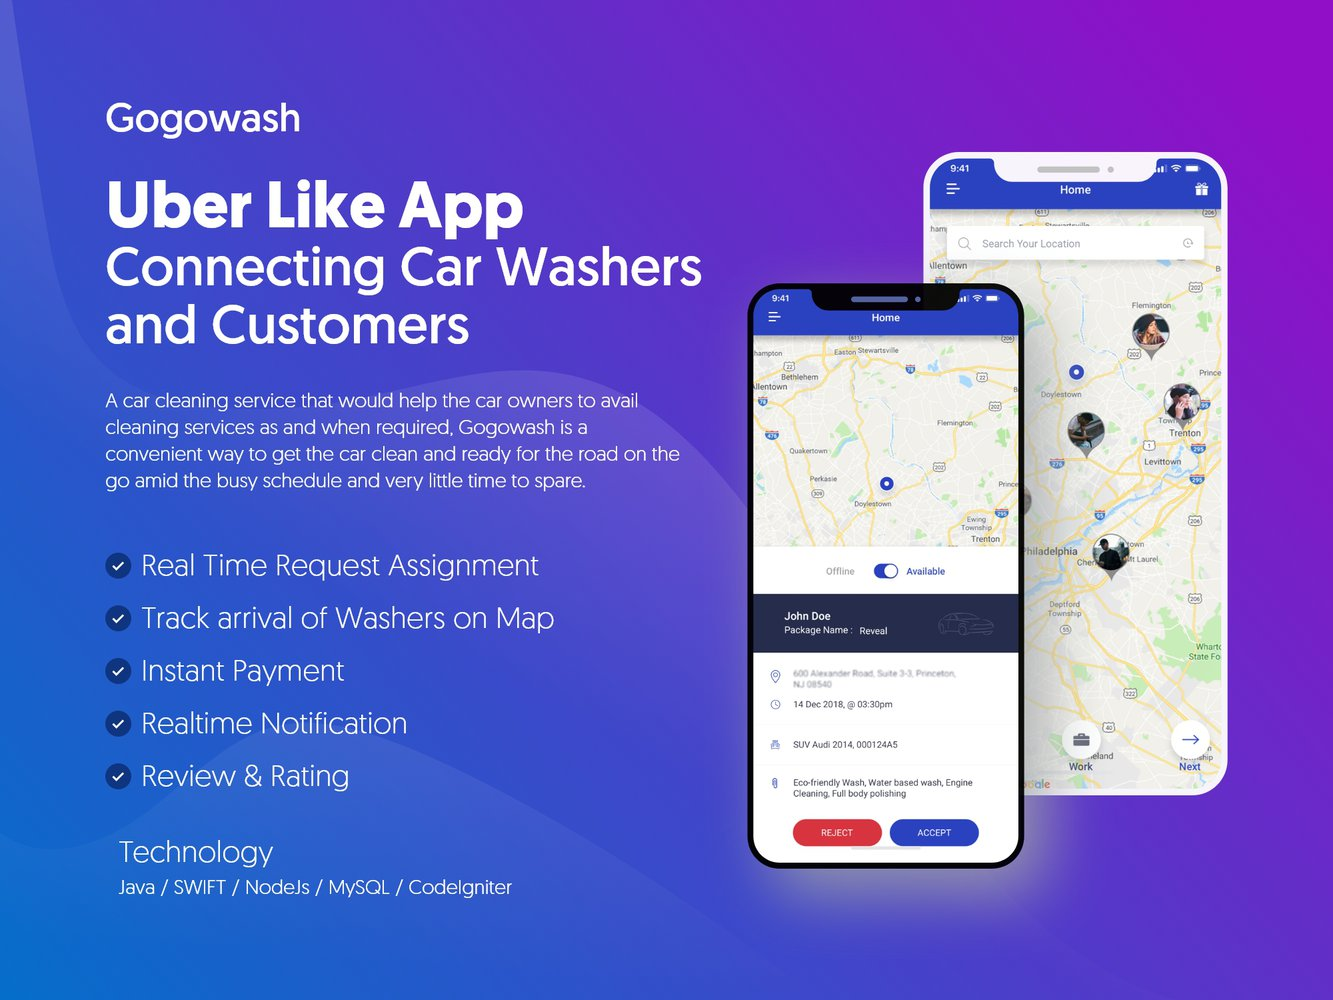 Uber Like App Connecting Car Washers and Customers